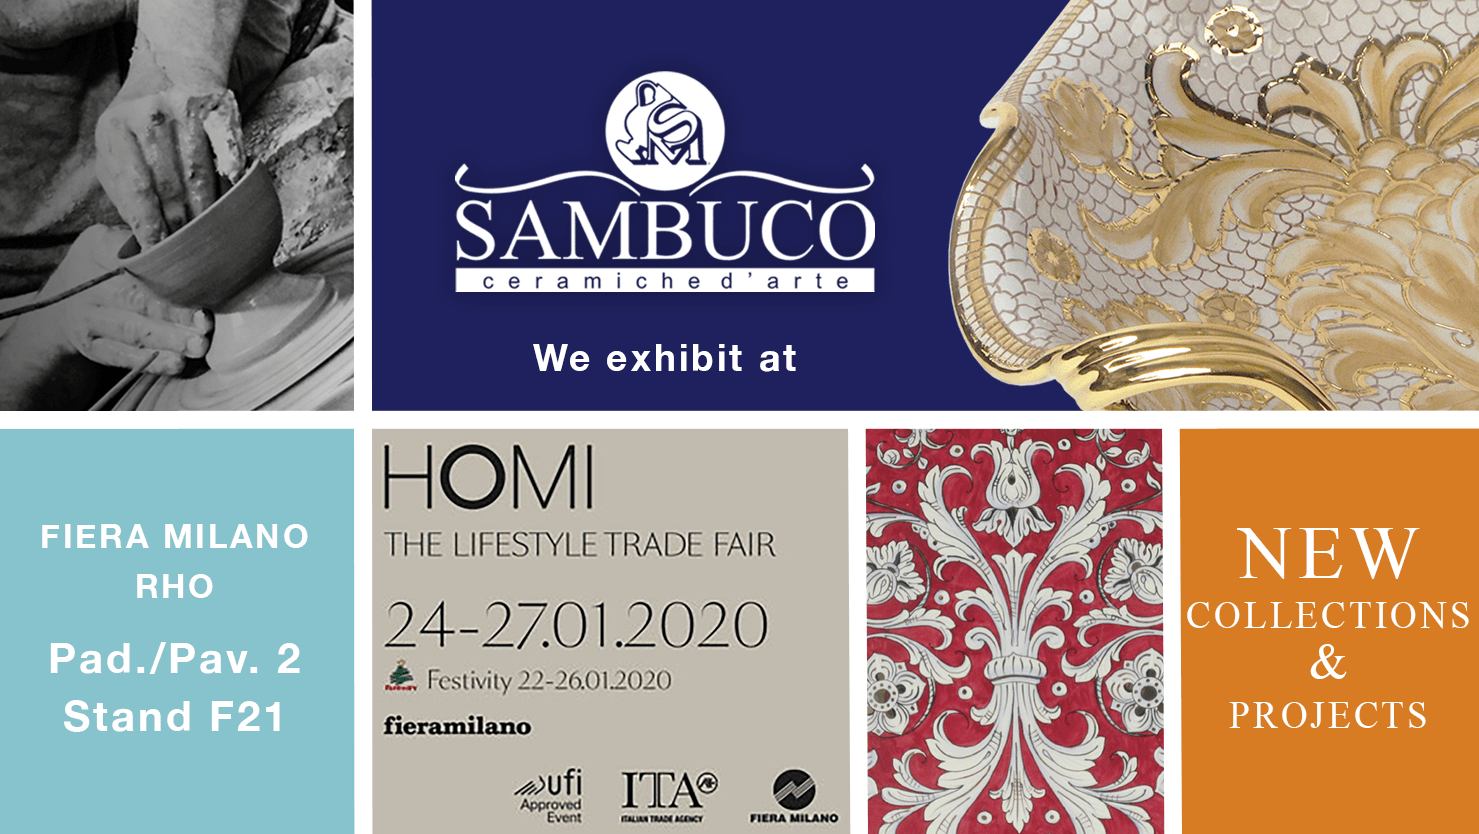 Sambuco exhibits at HOMI Milano January 2020.